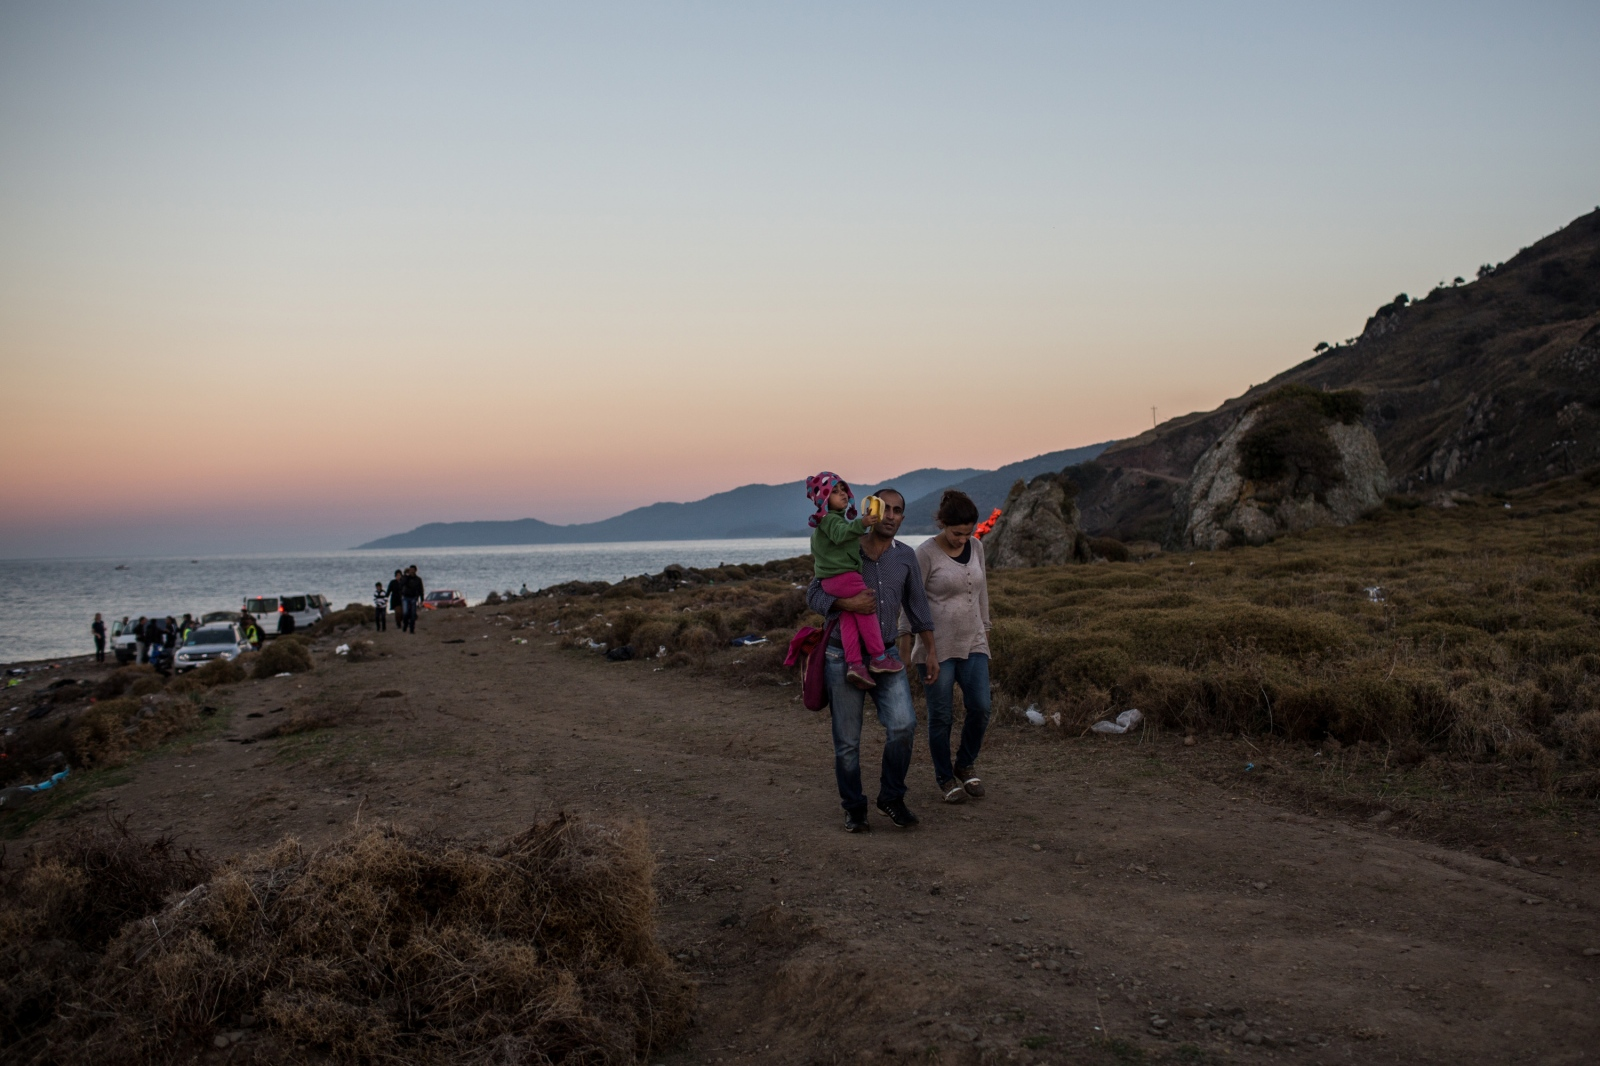 A refugee family, with nothing but the clothes on their backs, makes the several kilometers walk towards a transit center in Lesbos, Greece, on November 12, 2015, shortly after making the crossing from Turkey.